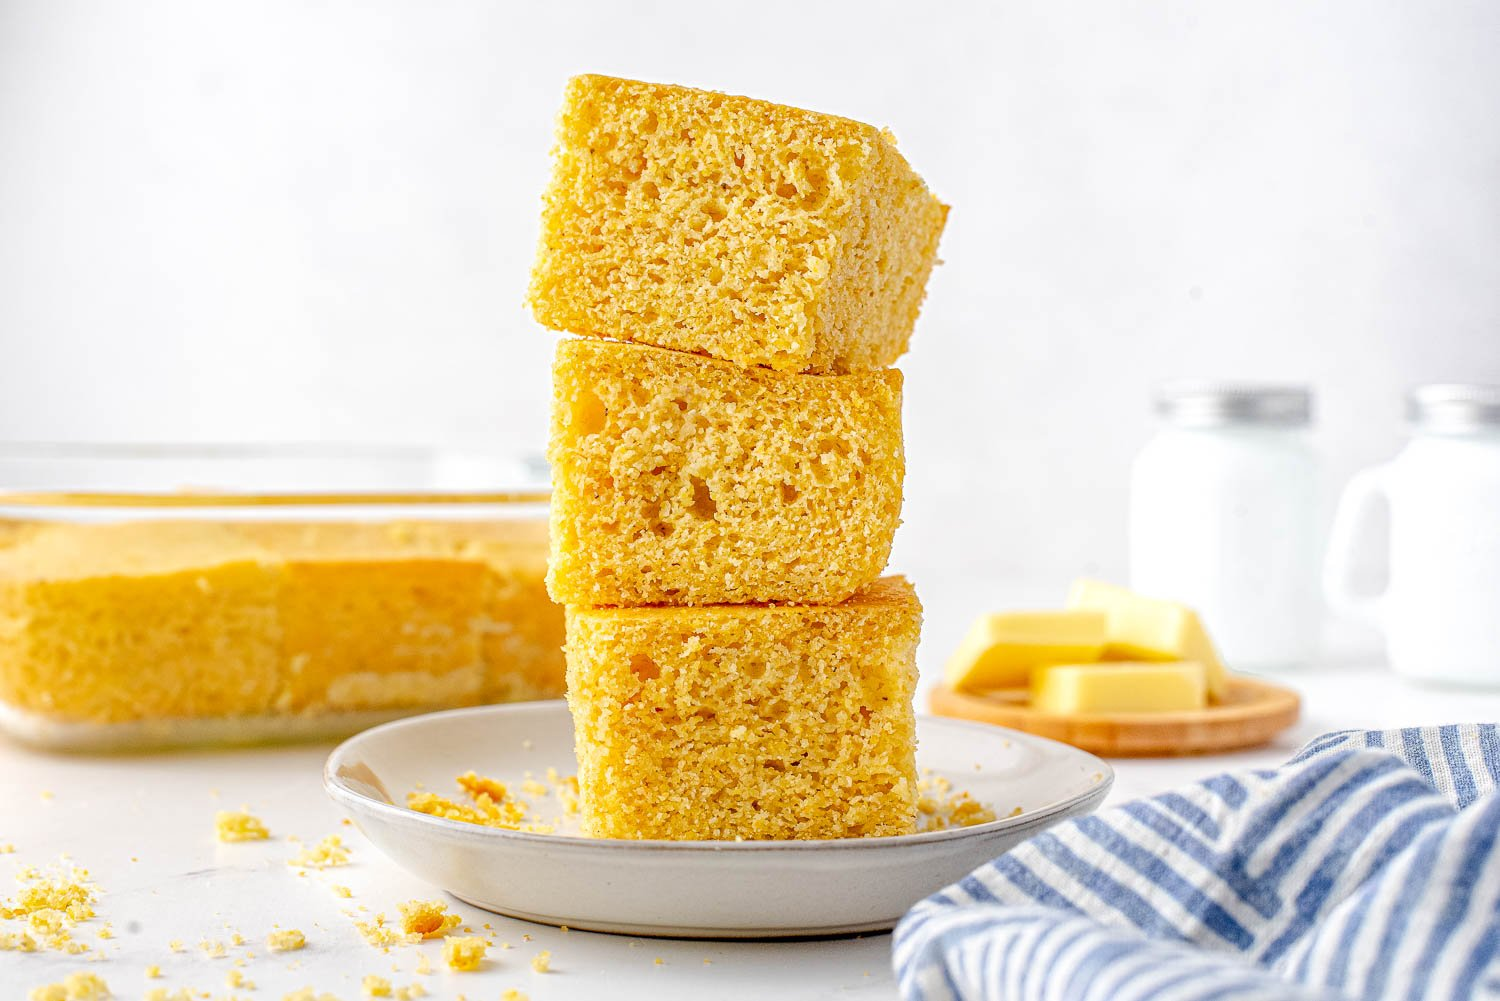 Three pieces of cornbread stacked on top of each other.